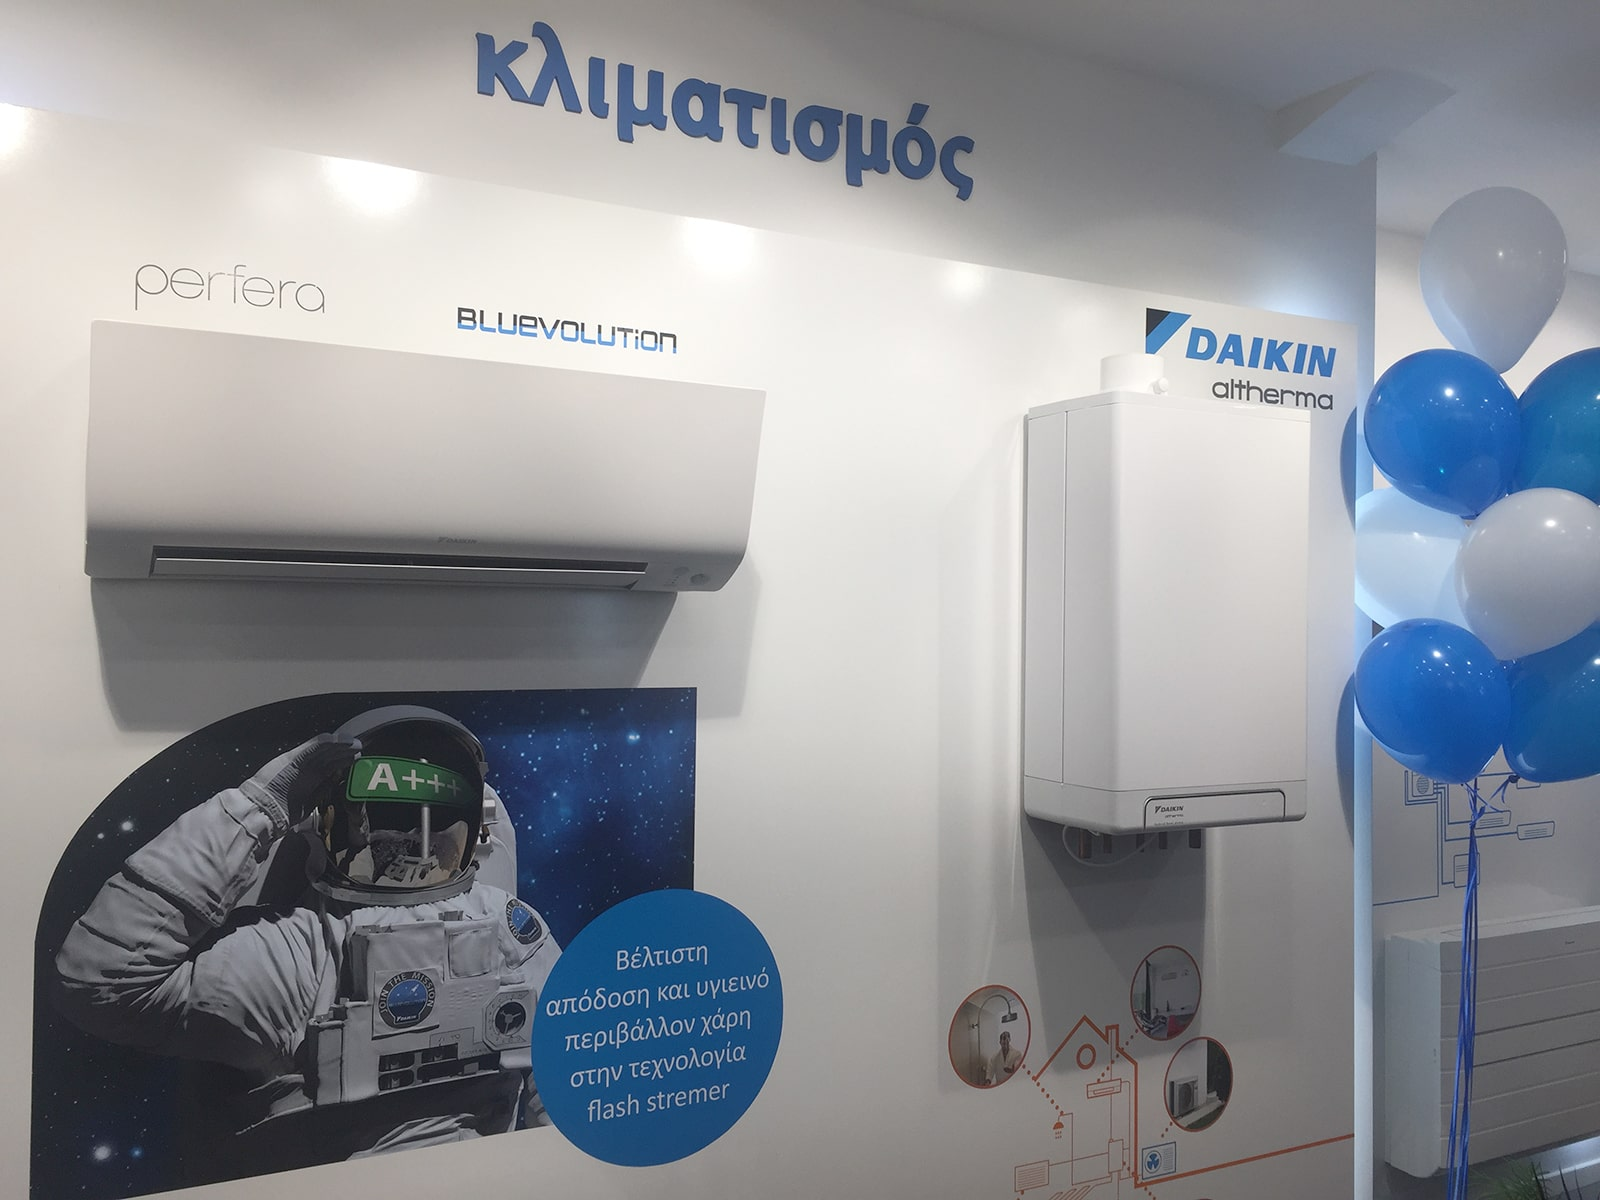 retail concept for Daikin's Blue Dealer+ store